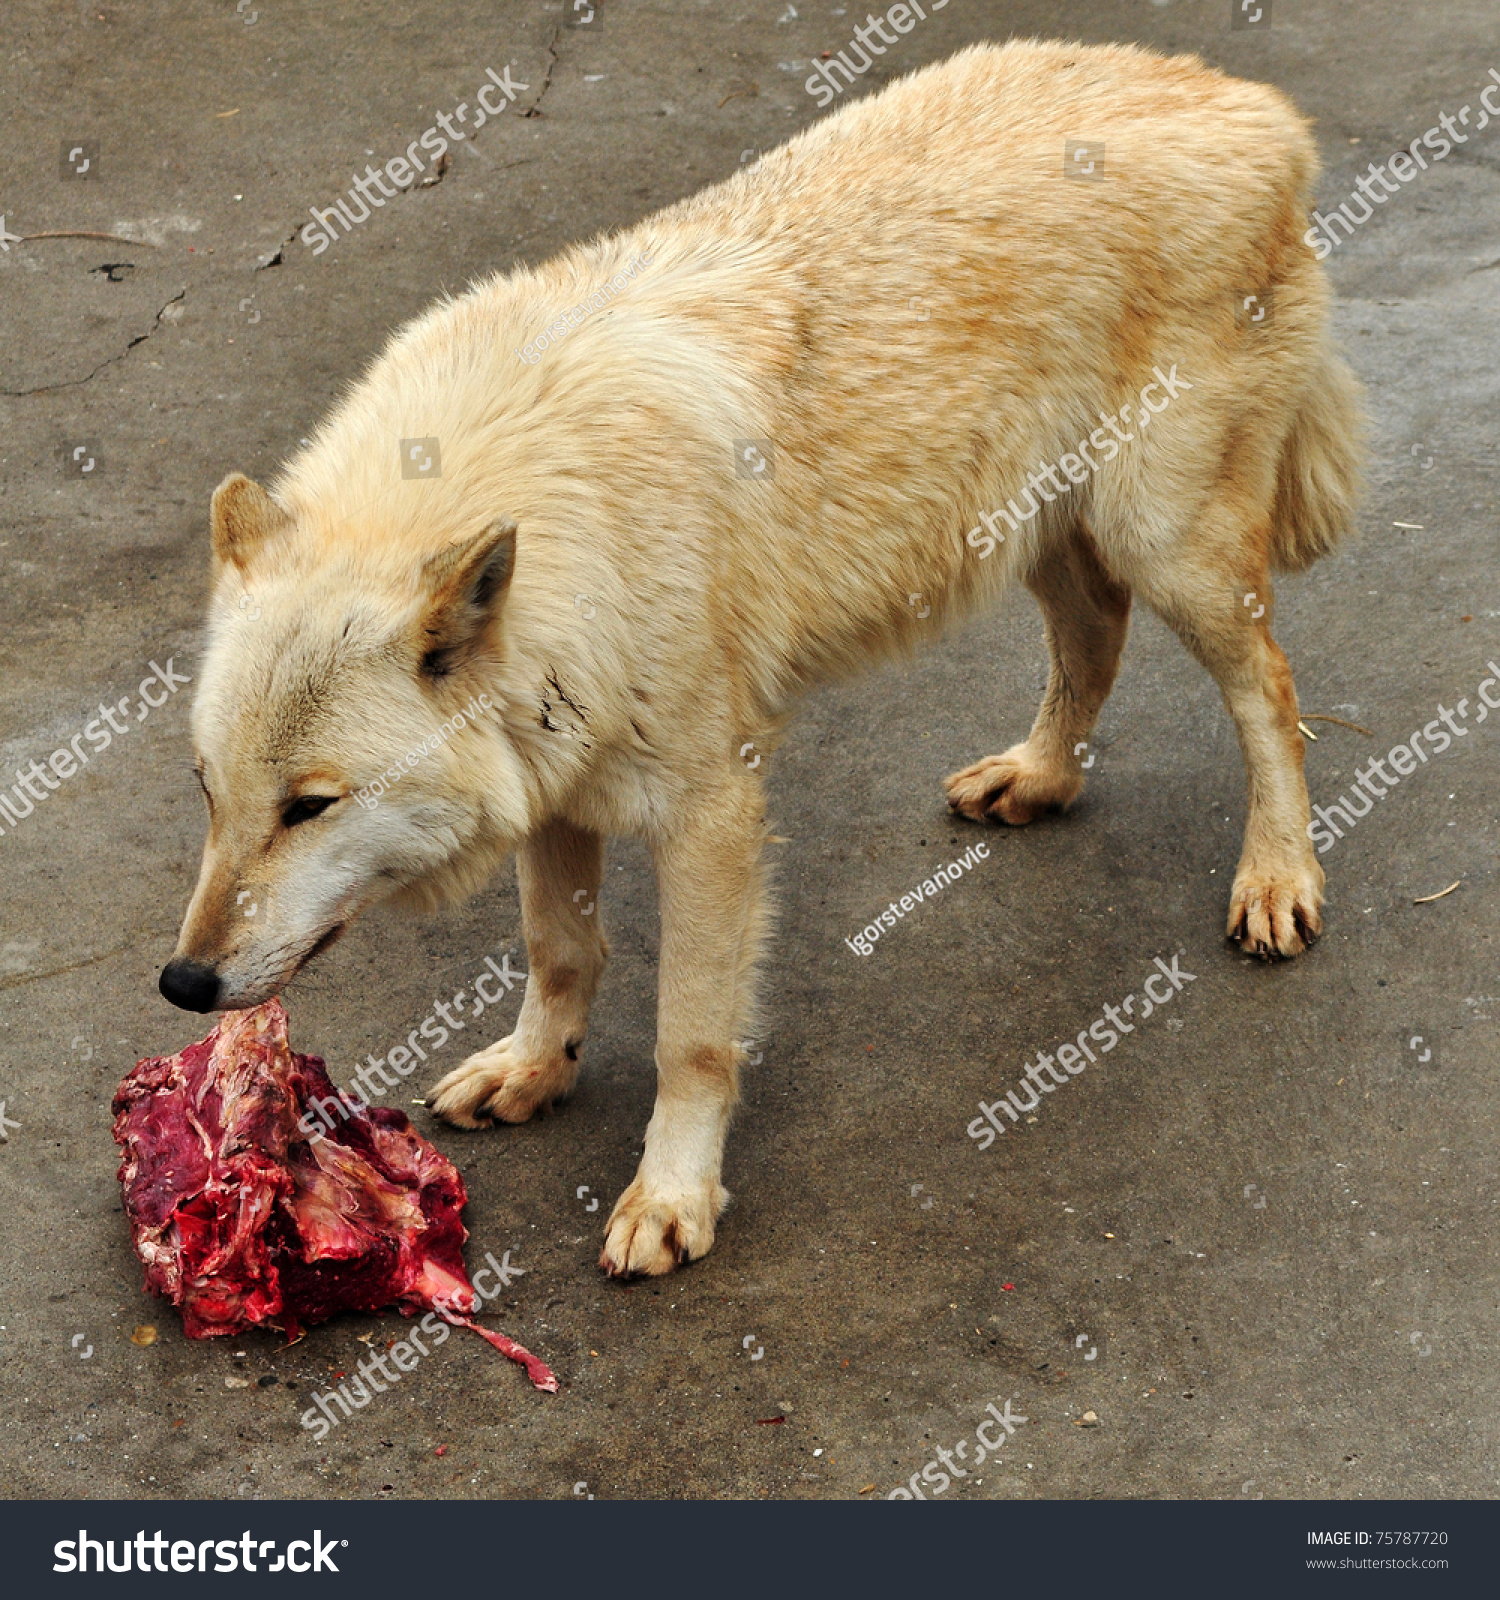 Stock Photo Wolf Eating